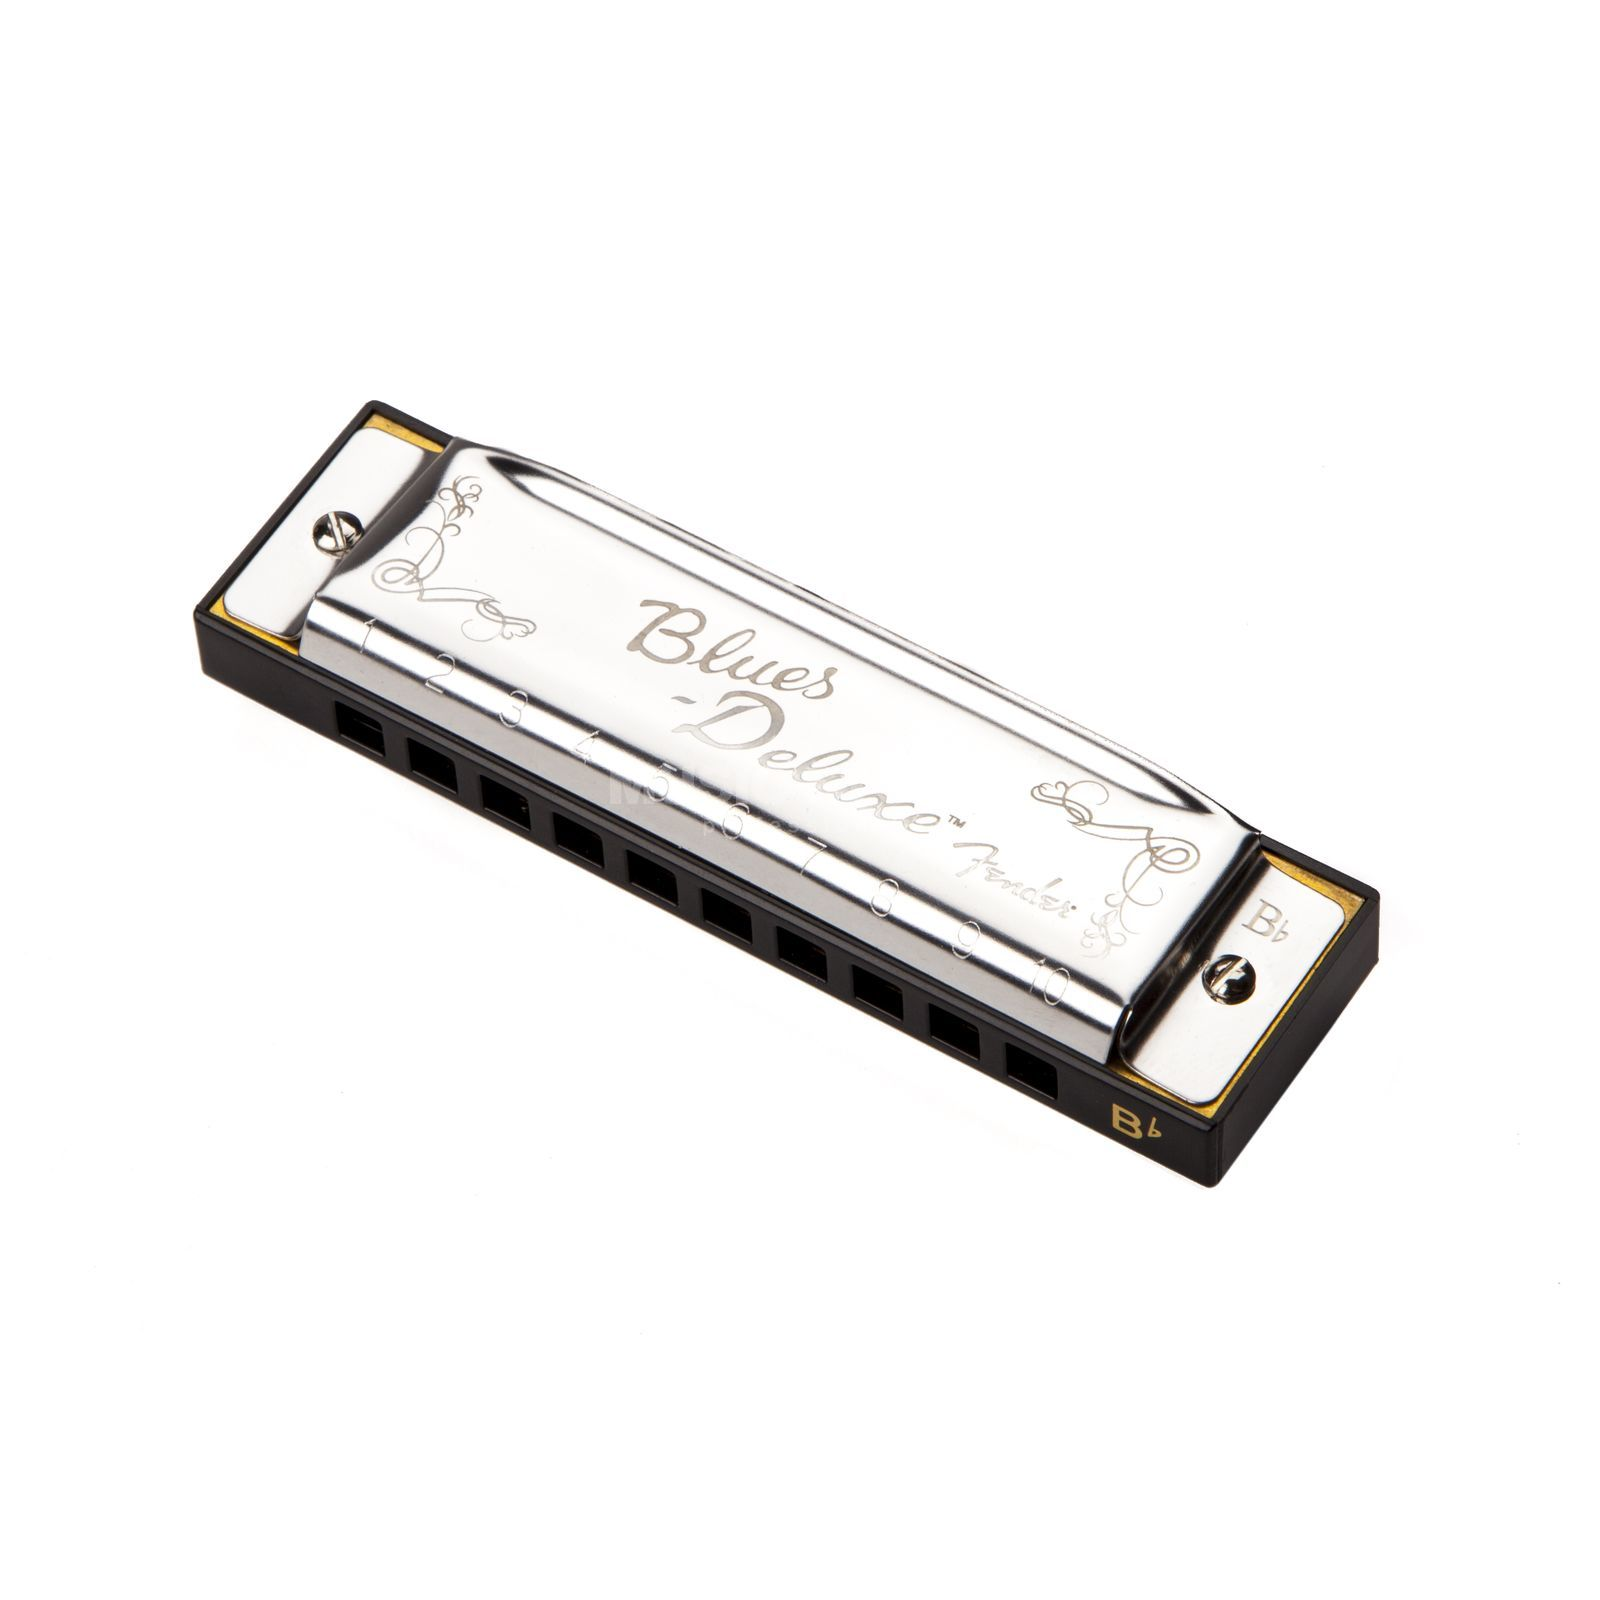 Fender Blues Deluxe Harmonica Key of B Flat Zdjęcie produktu